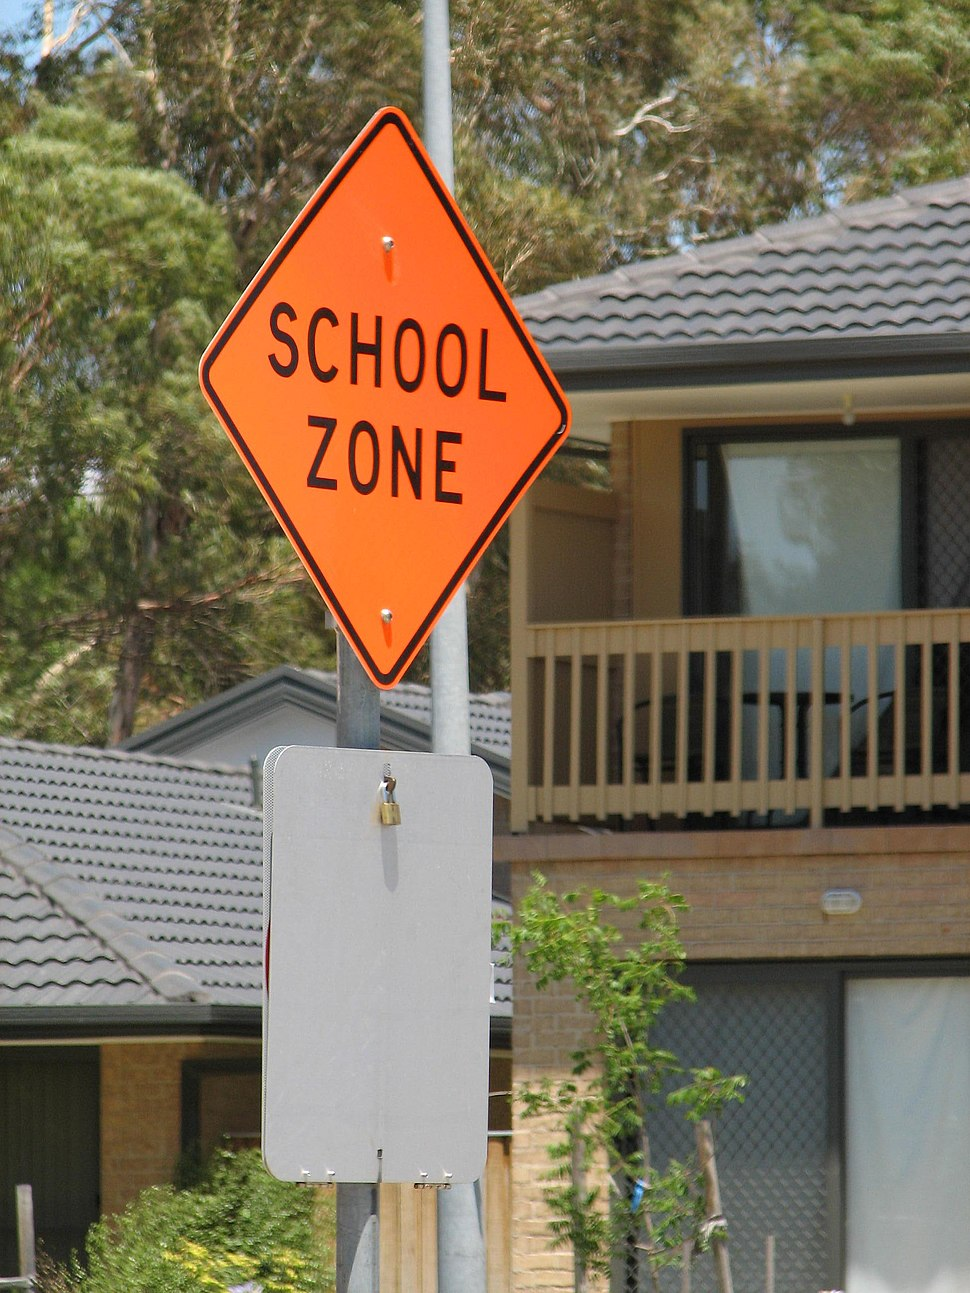 School zone in Canberra